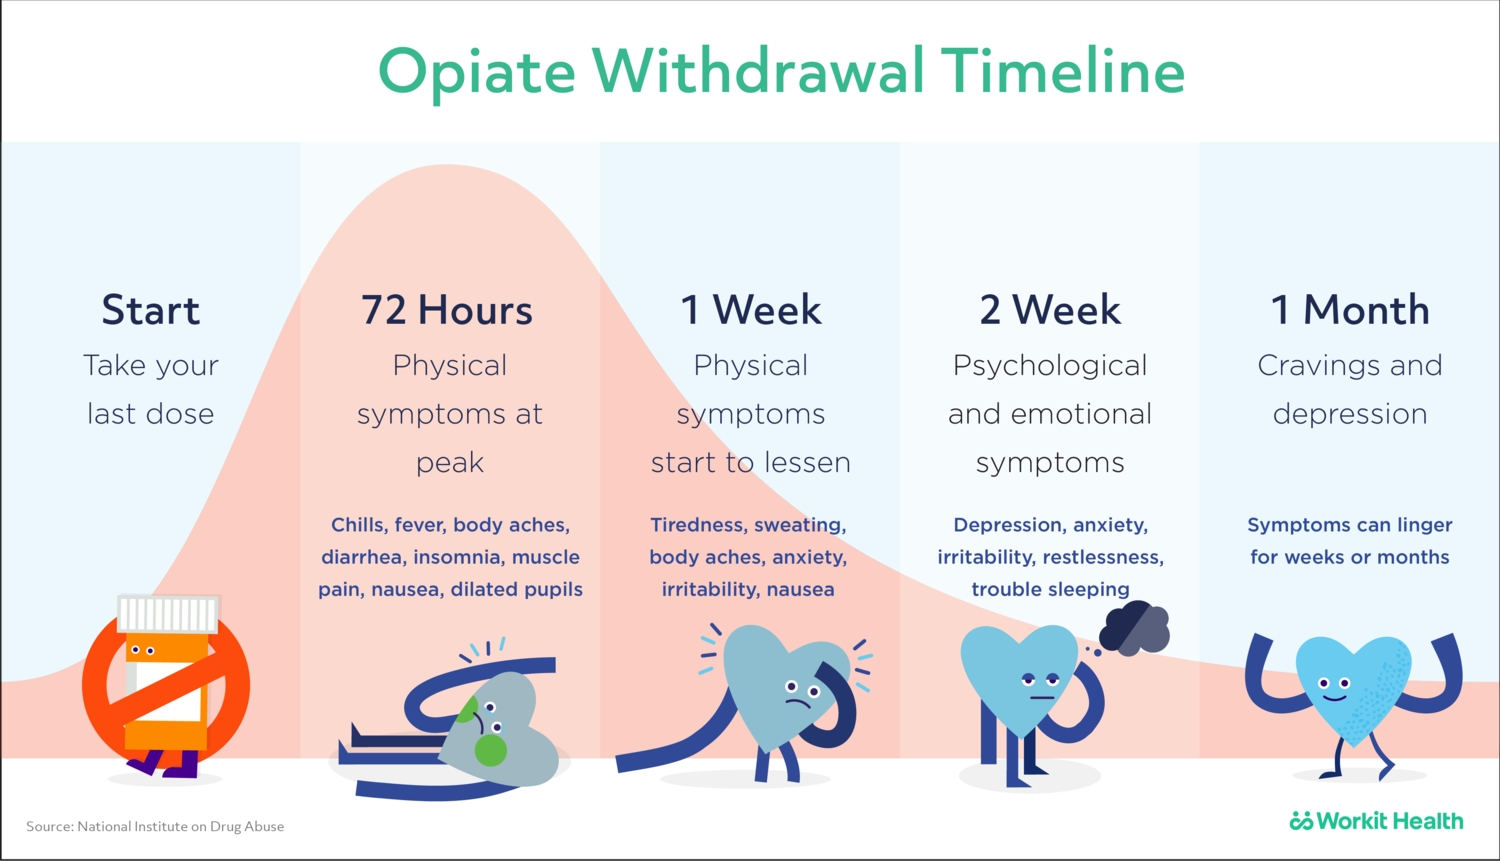 opiate withdrawal timeline: what to expect (downloadable) — workit